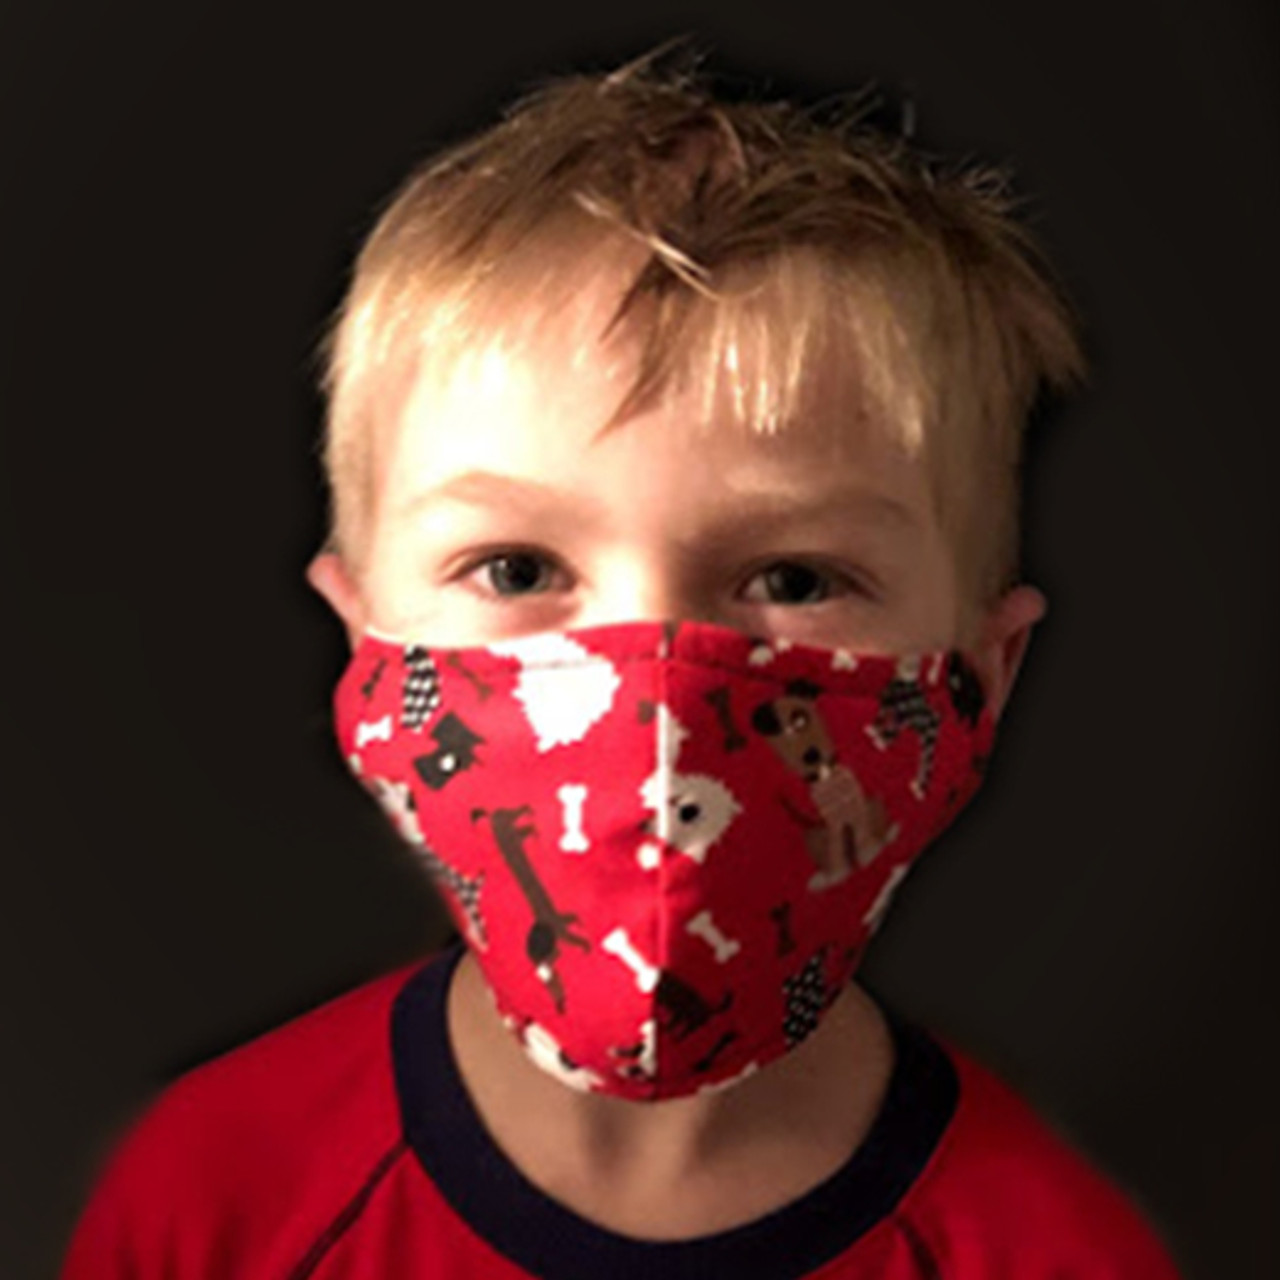 Children's Face Covering Mask - Red with Dogs